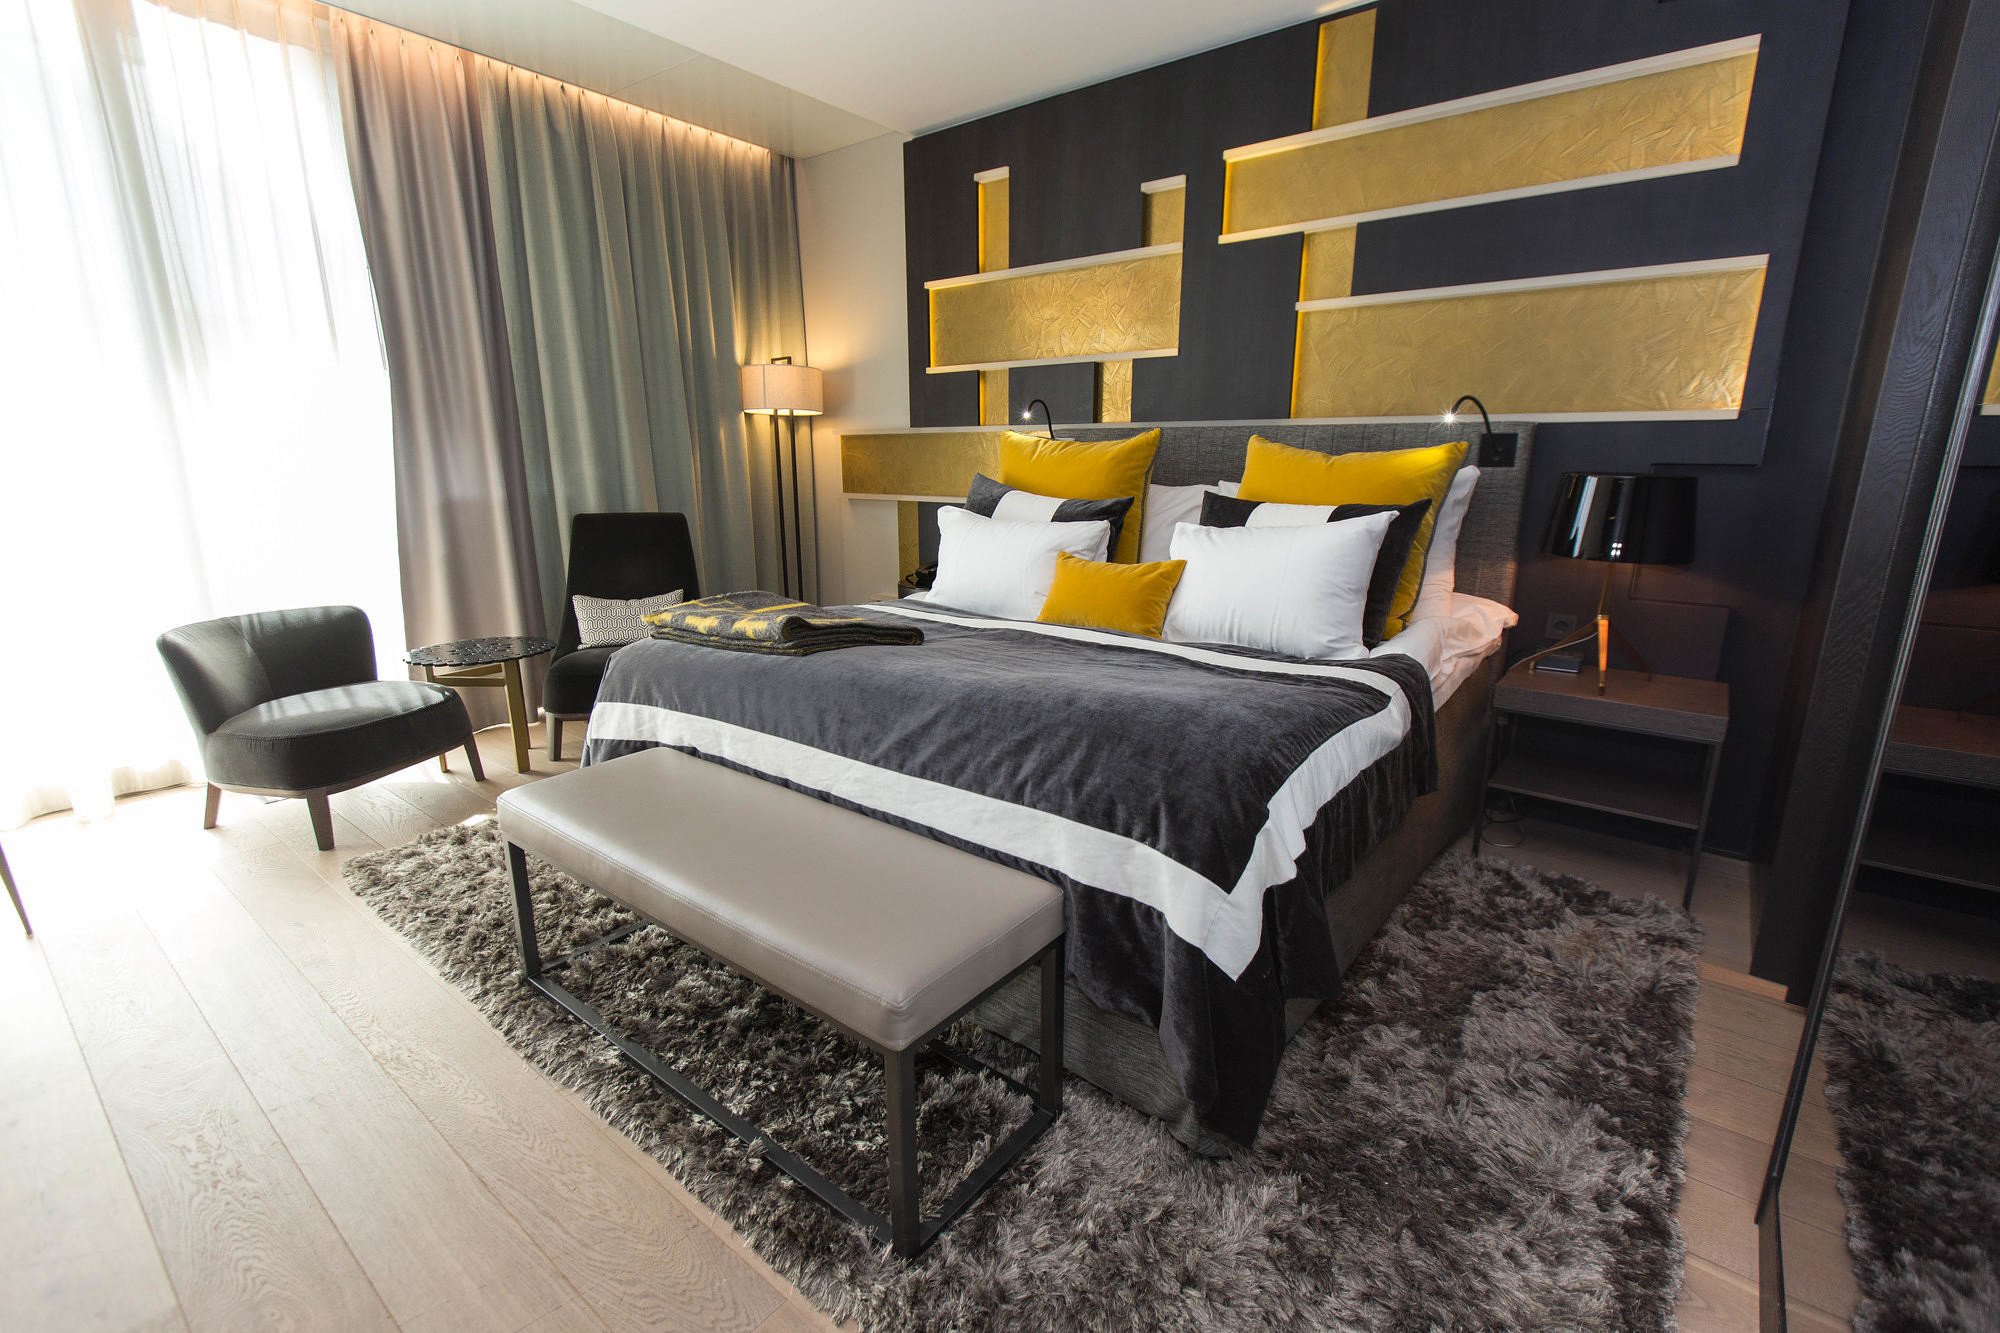 Deluxe Room at The Thief in Oslo, Norway